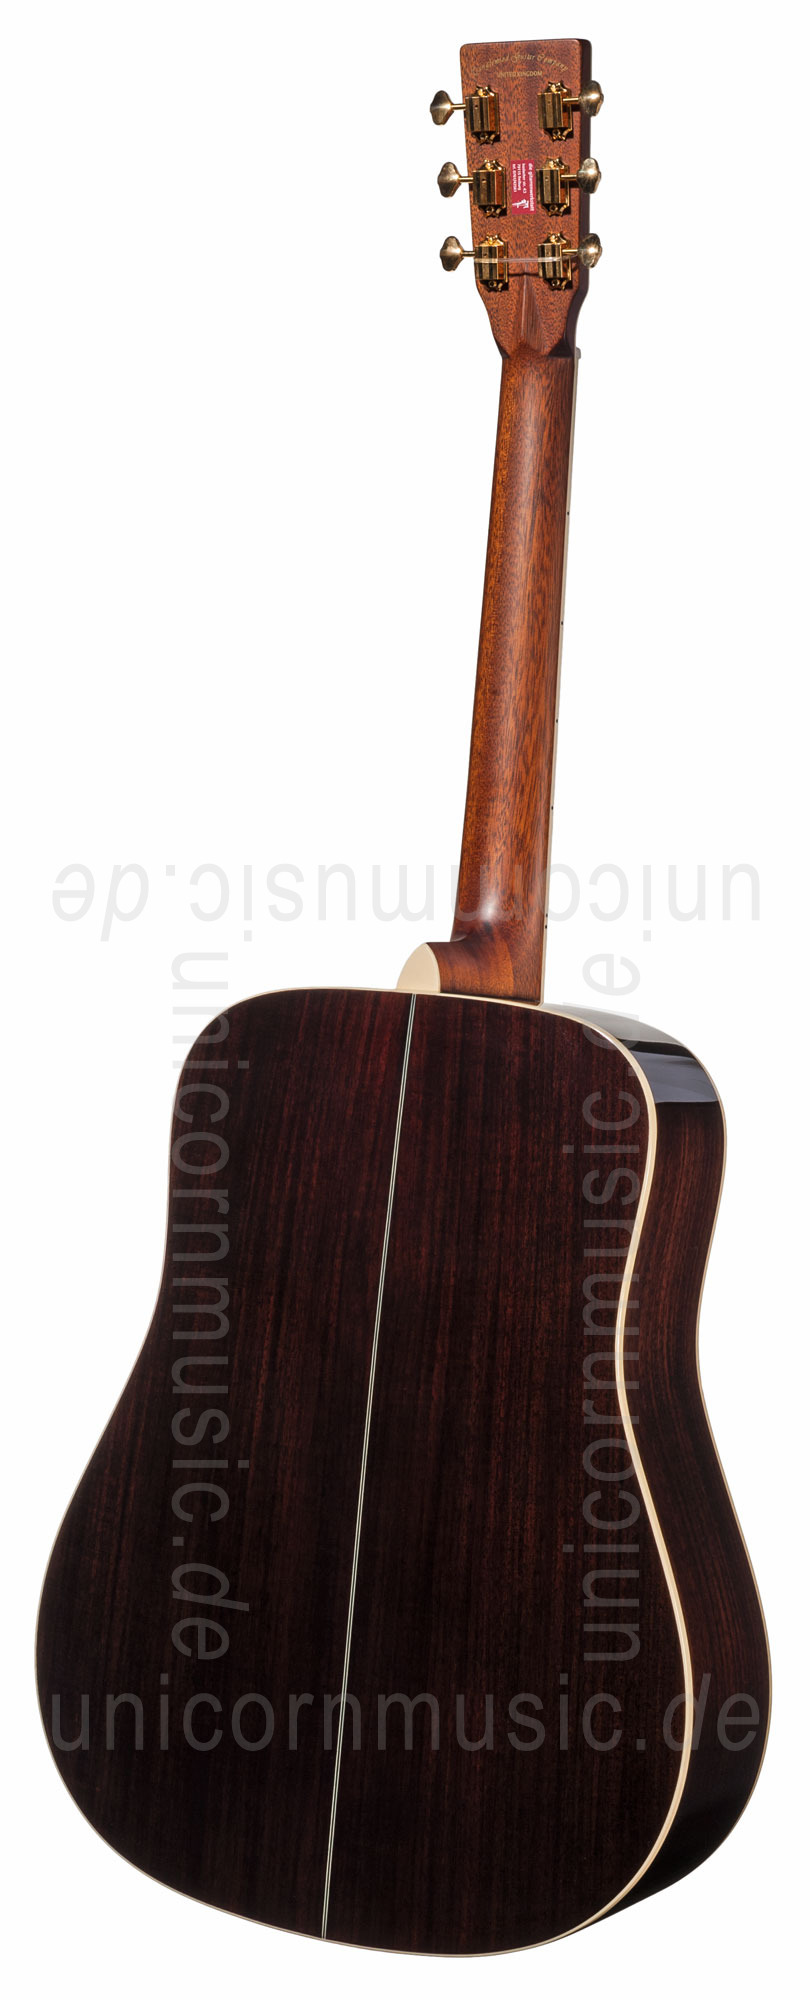 to article description / price Acoustic Guitar TANGLEWOOD TW1000/H SRE - Heritage Series - Fishman Sonitone - Dreadnought - all solid + Hardacse